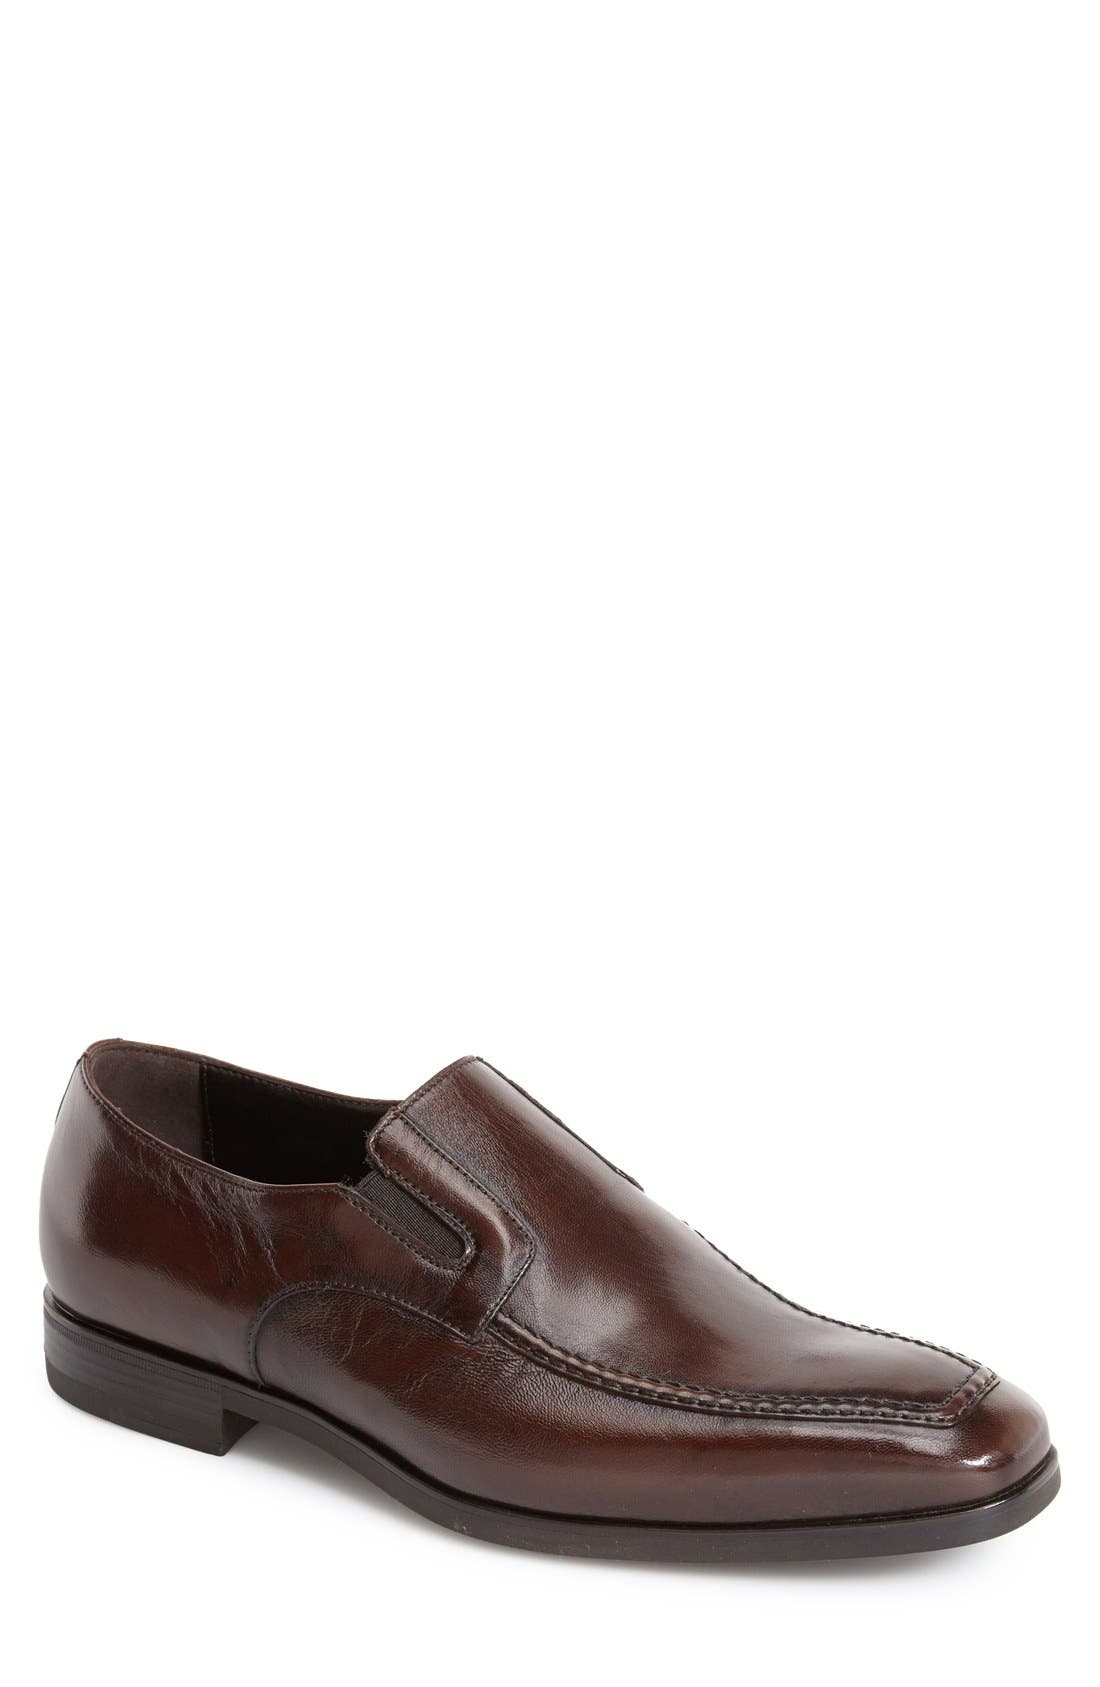 'Blaze' Venetian Loafer,                             Main thumbnail 1, color,                             Brown